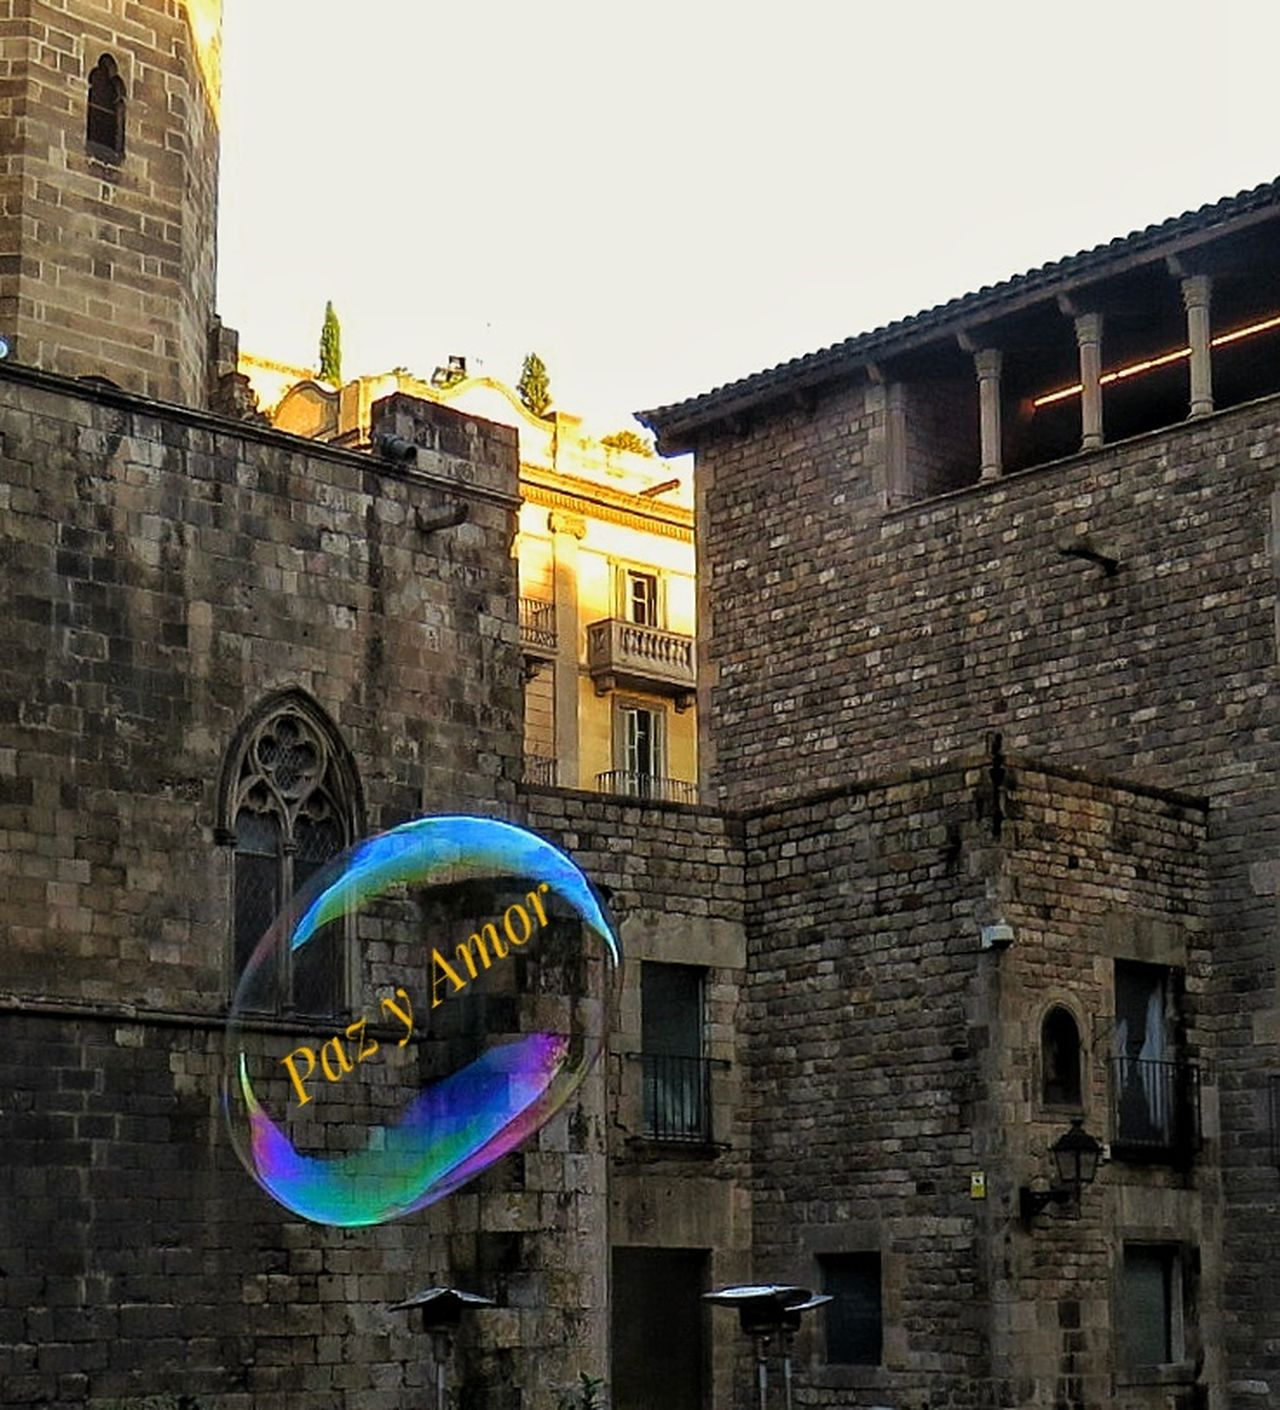 Mis deseos ...burbujas viajeras 🙏🙏🙏 Finding New Frontiers Architecture Building Exterior Built Structure Outdoors No People Capture The Moment Reflejos Reflexions Light Effect